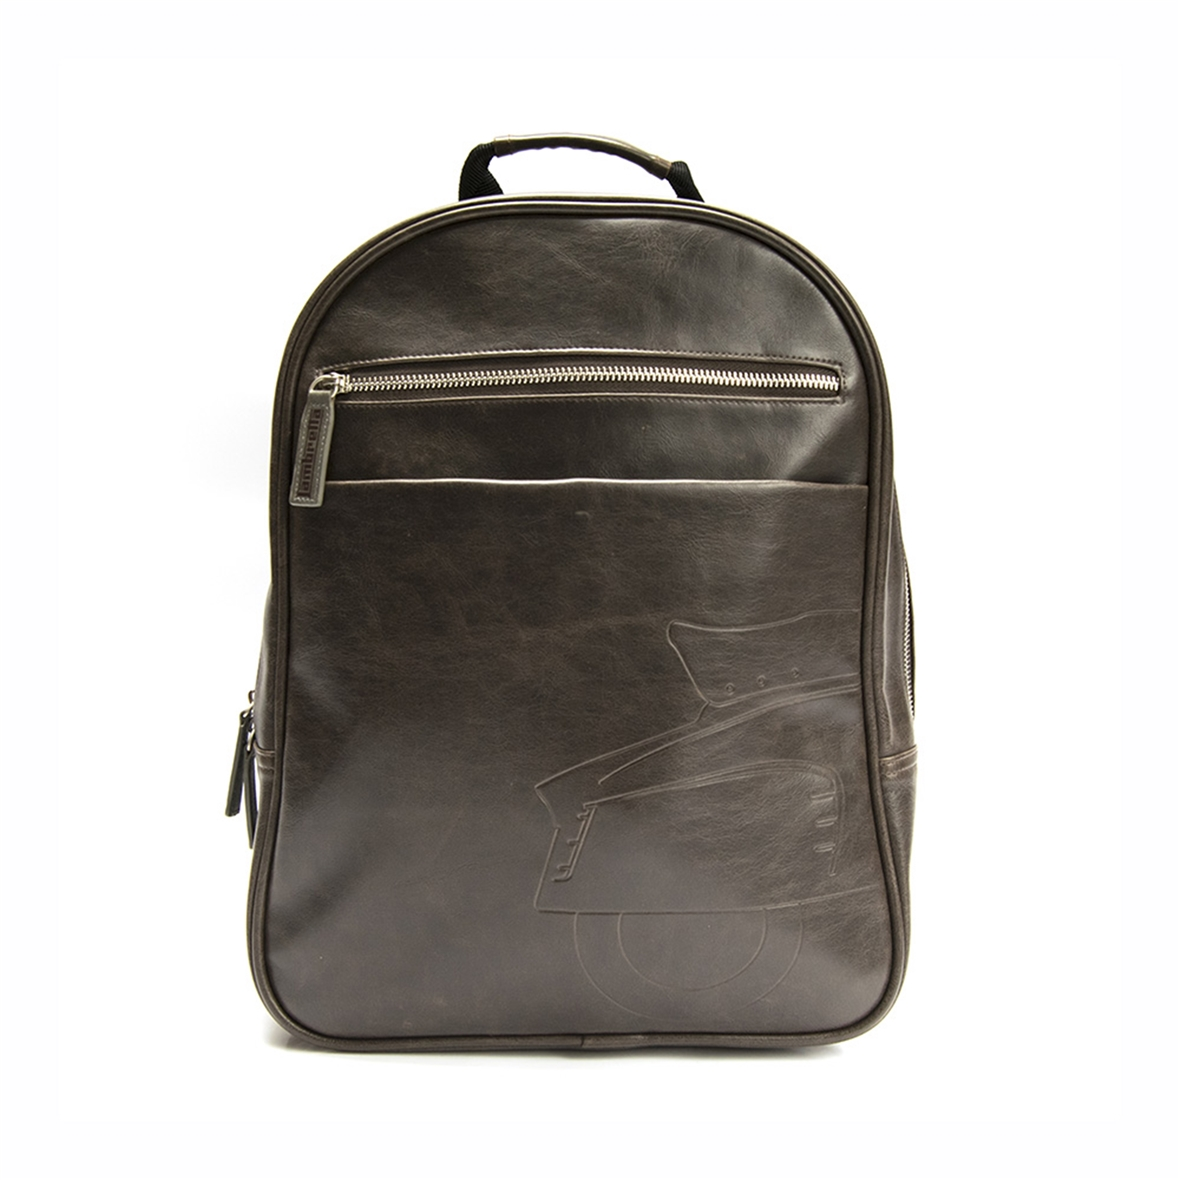 Product Image for 'Backpack FORME LambrettaTitle'